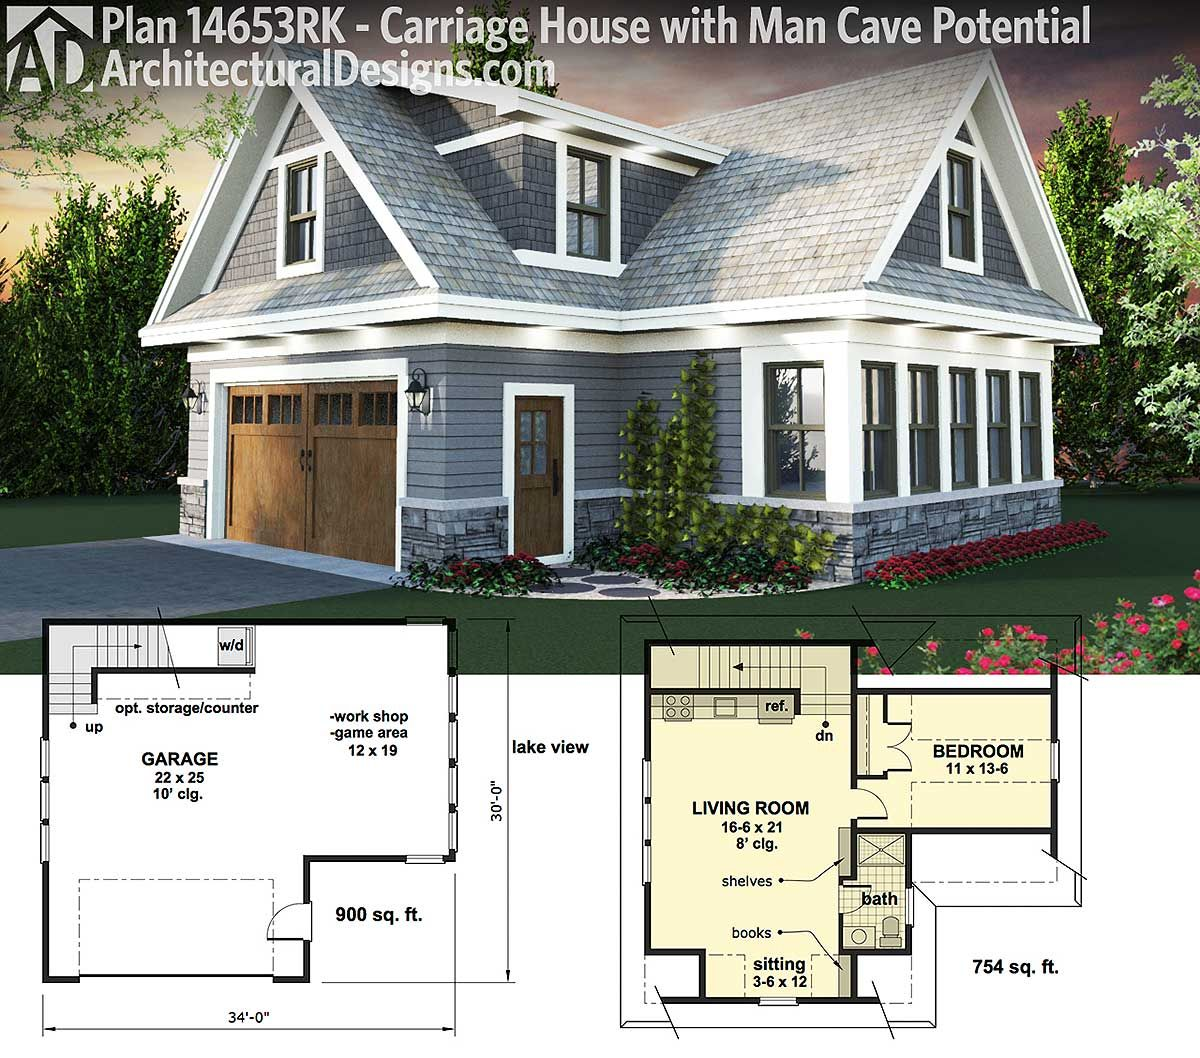 Plan 14653rk carriage house plan with man cave potential for Free house plans and designs with cost to build